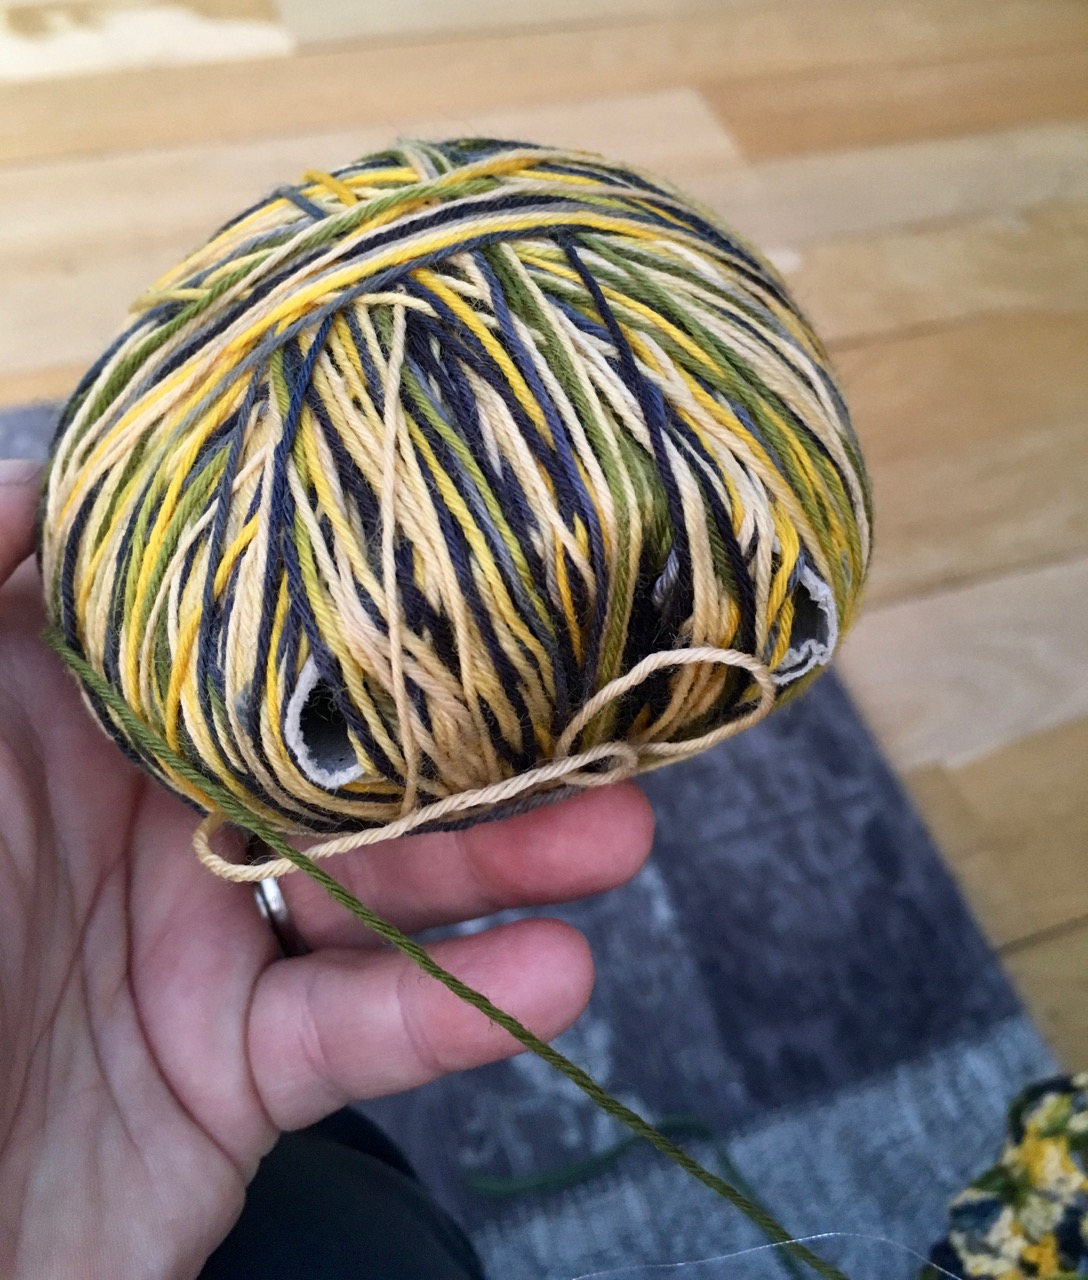 the much smaller ball of wool that's left